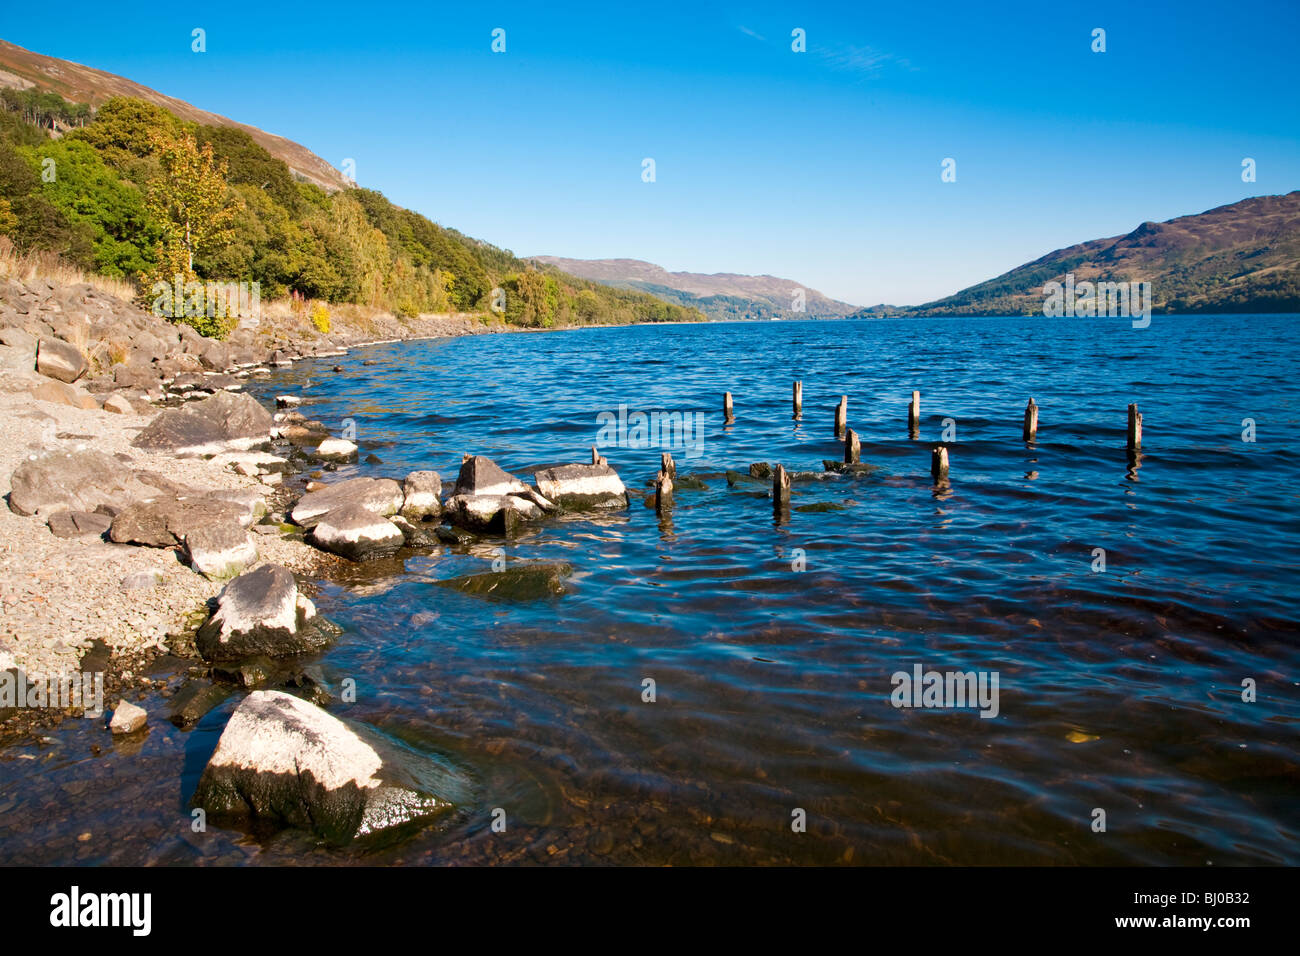 Views of the shores of Lake with rocks and landscape, Loch Earn Scotland - Stock Image